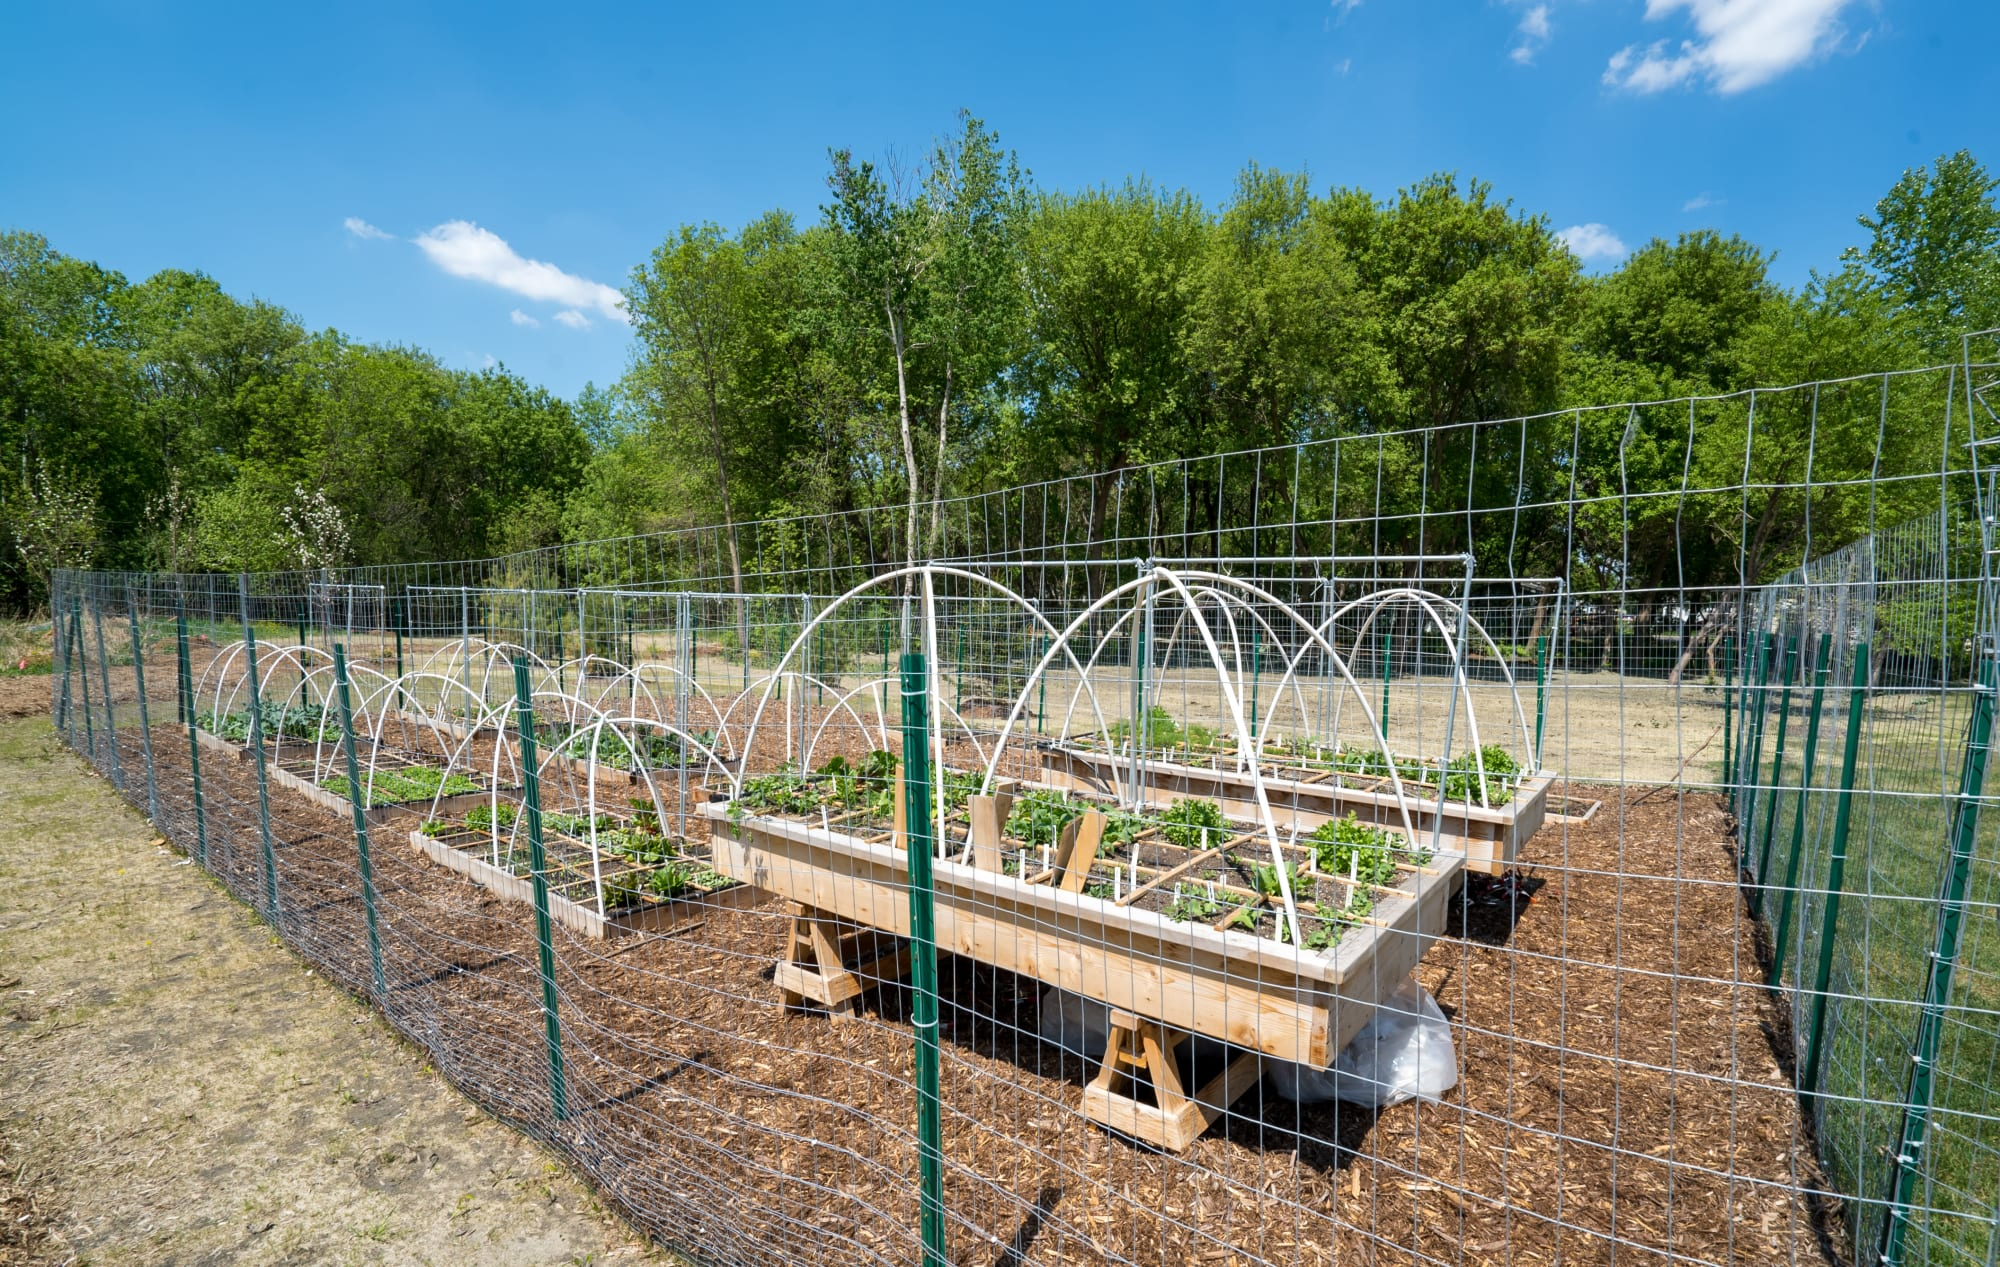 Awesome community garden at The Parkway off Central in Blaine, Minnesota